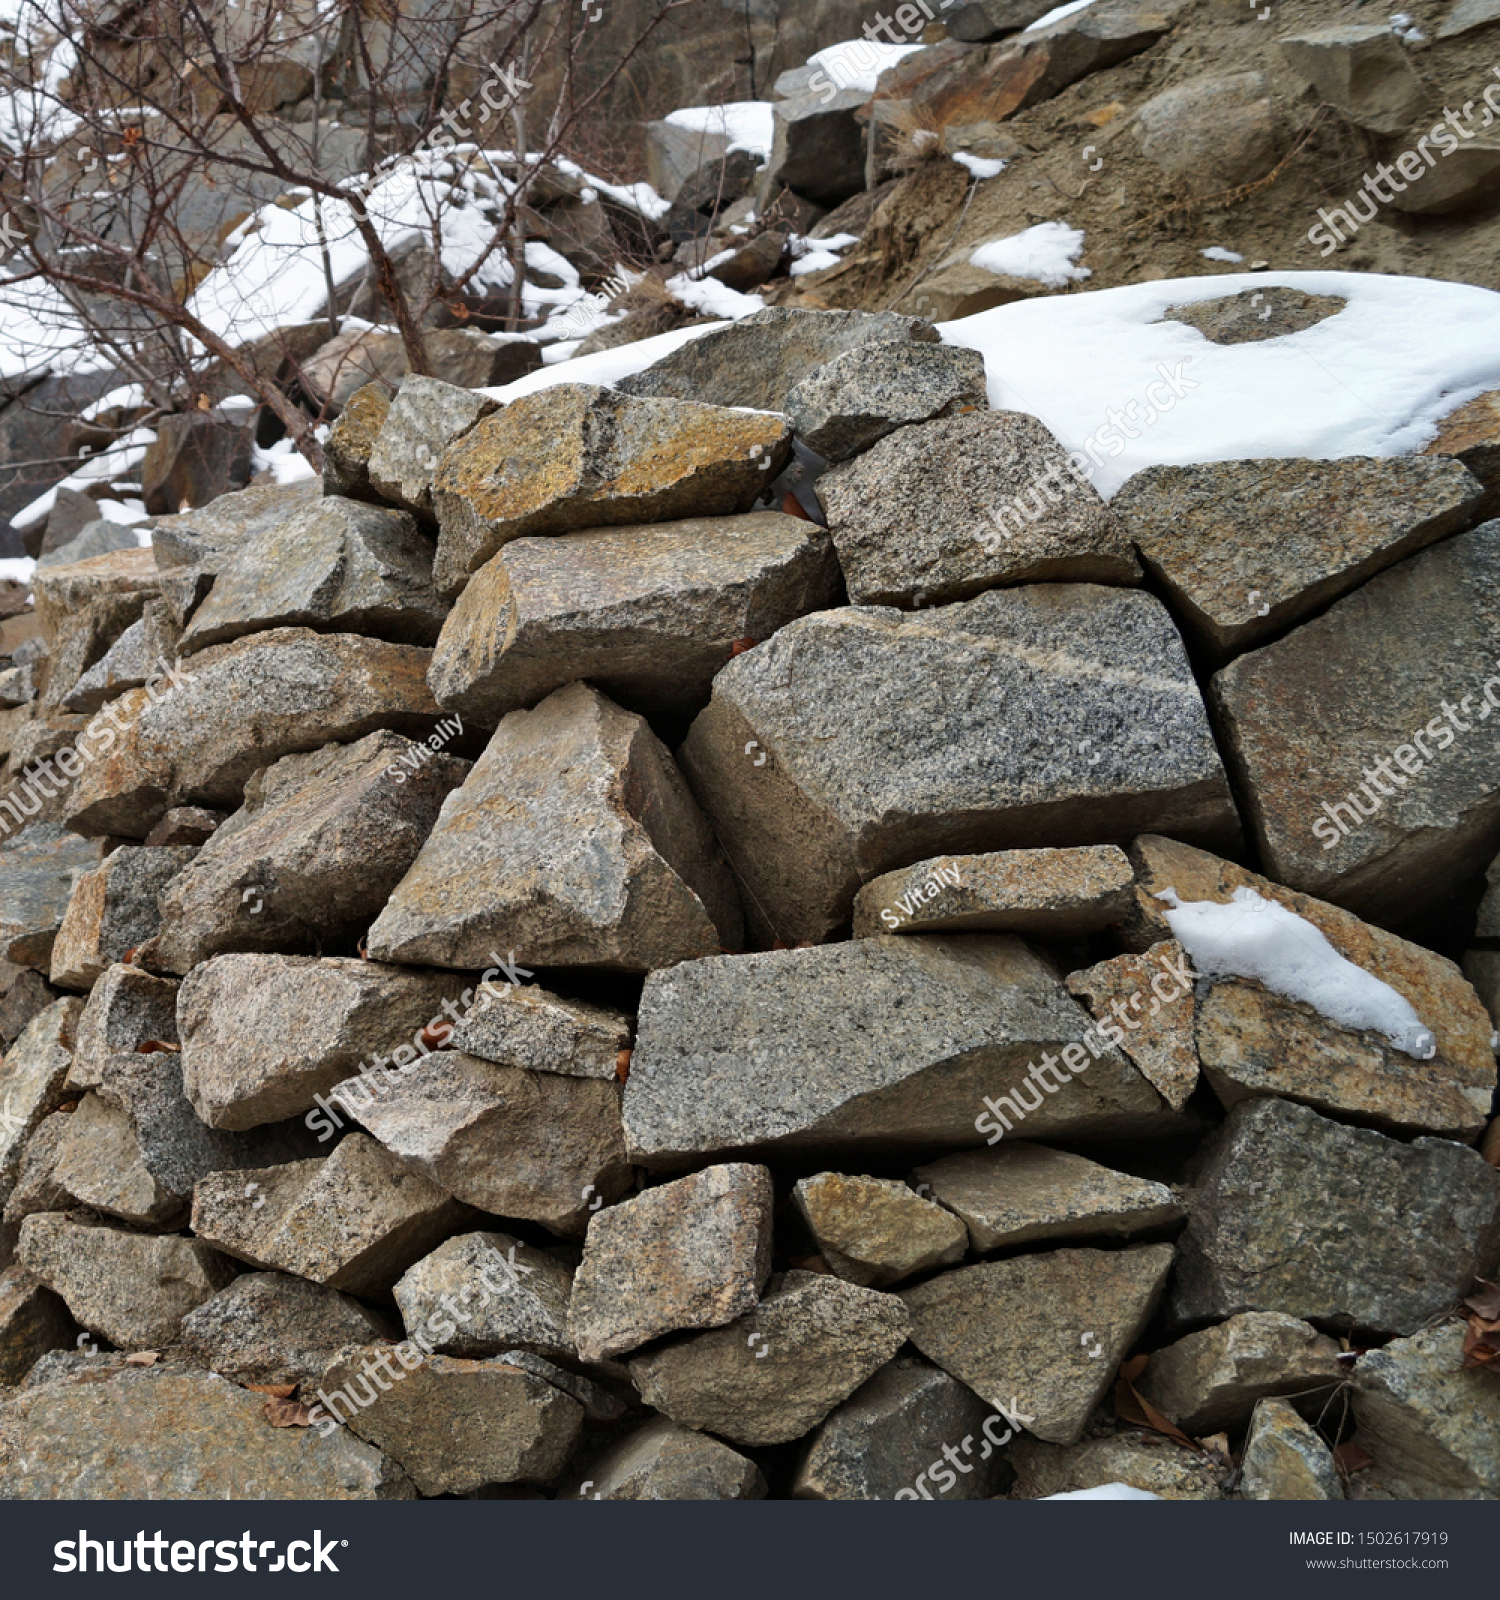 Masonry of rough rough stone sprinkled with snow #1502617919